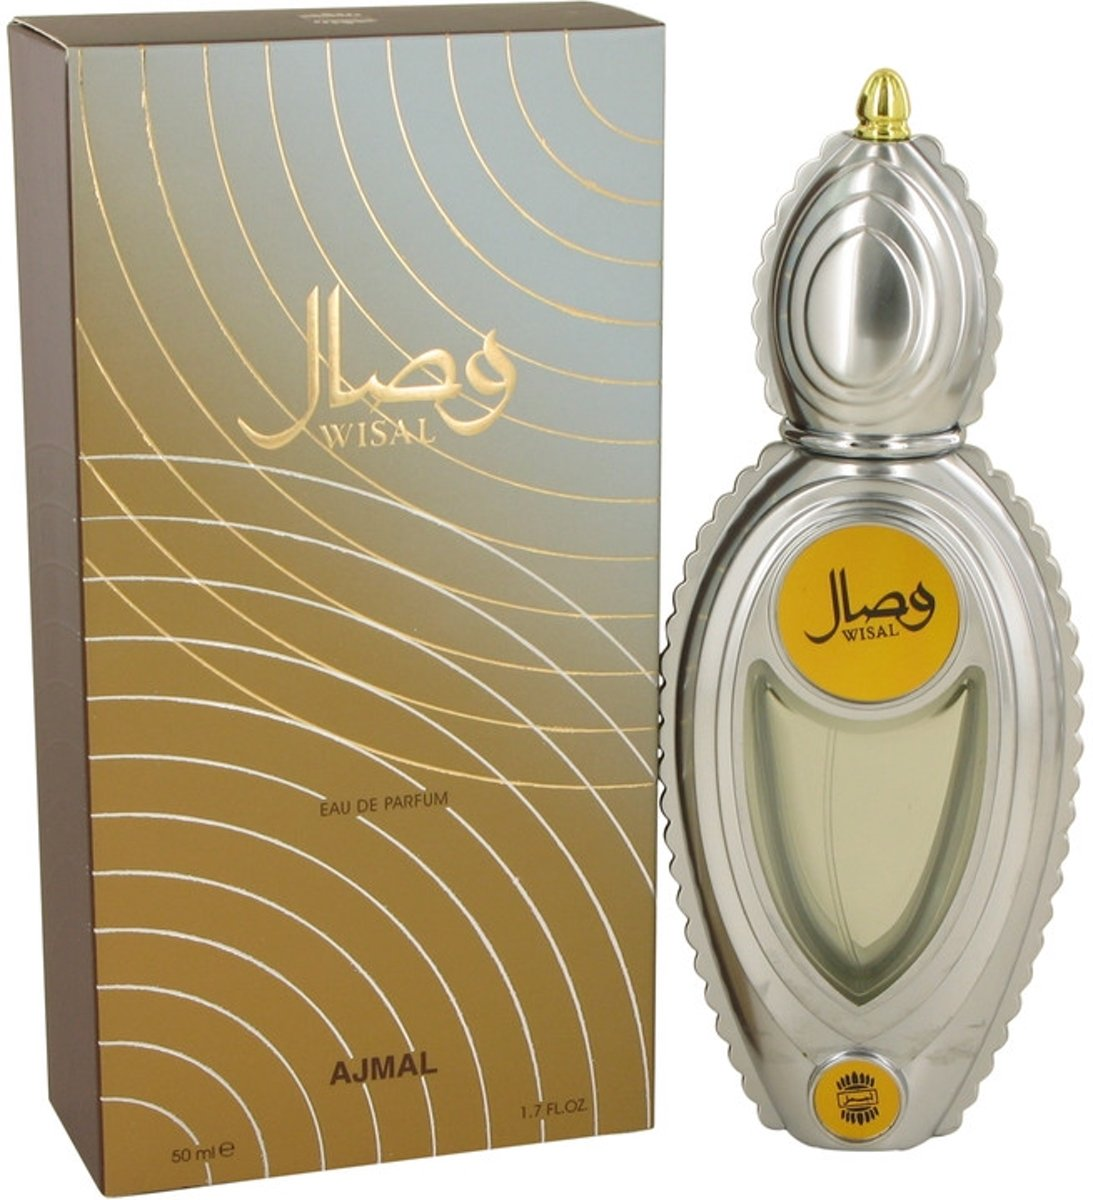 Ajmal Wisal - Eau de parfum spray - 50 ml